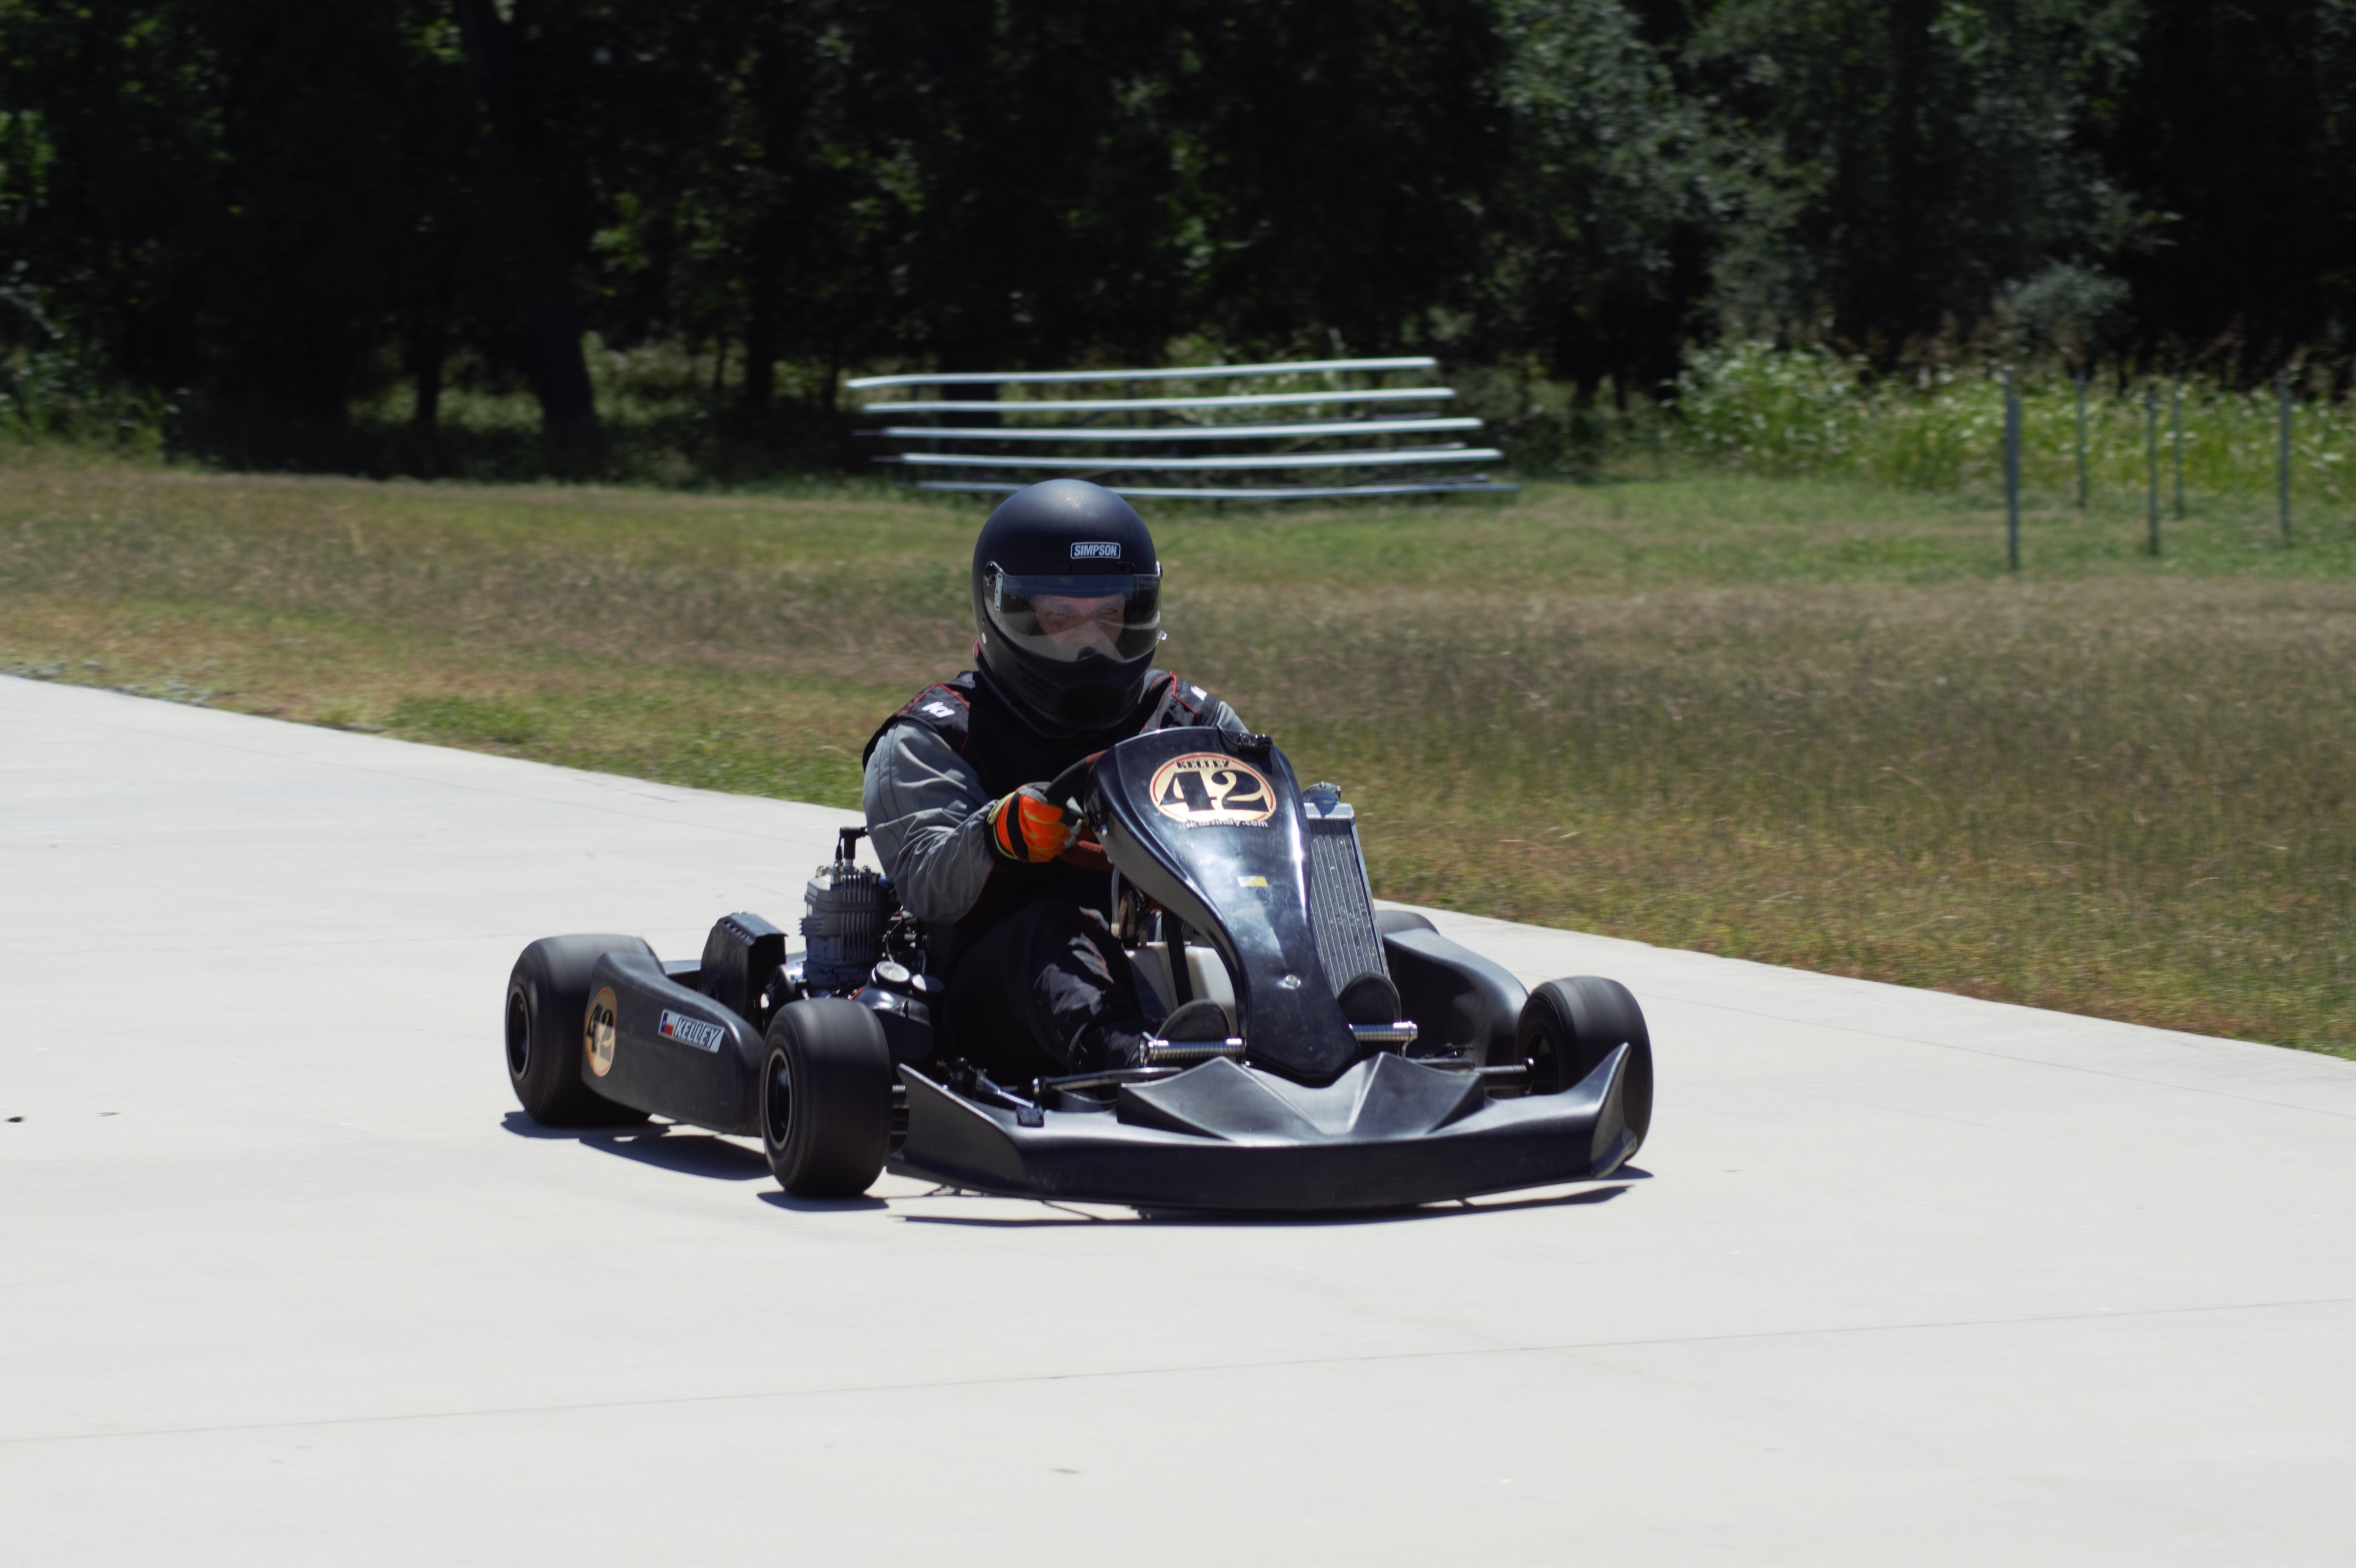 Hill Country Kart Club | Kart racing in Texas with some elevation